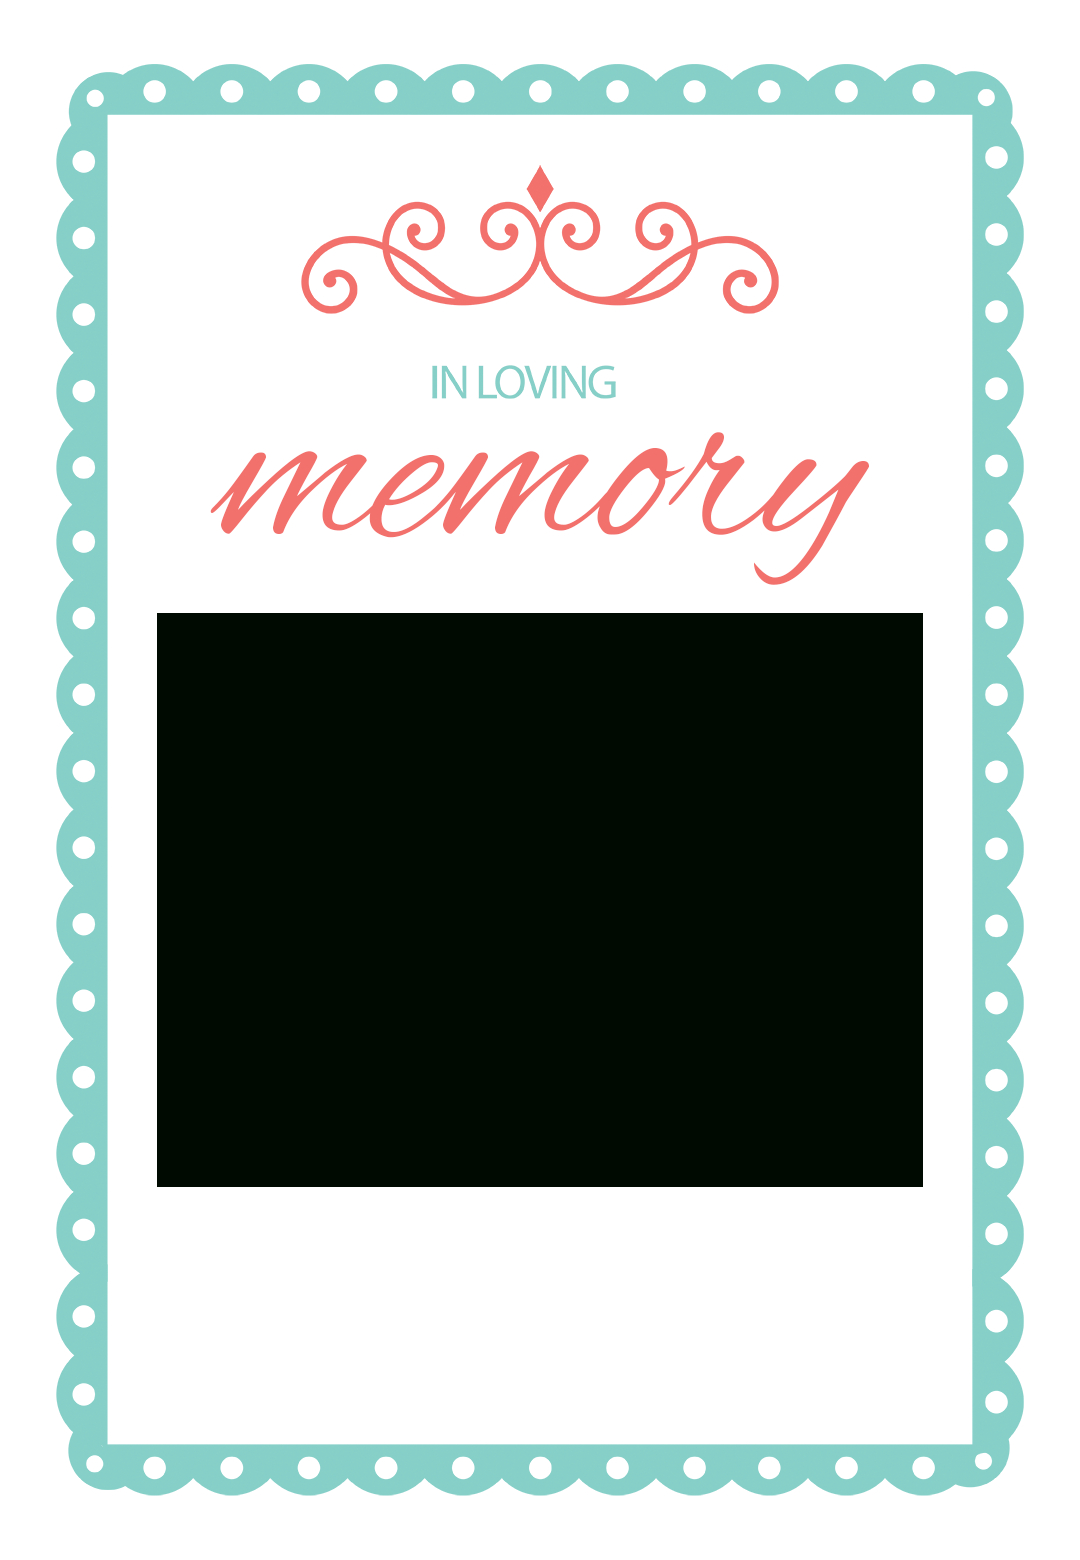 002 Free Memorial Cards Template Awful Ideas Card Templates Intended For Remembrance Cards Template Free